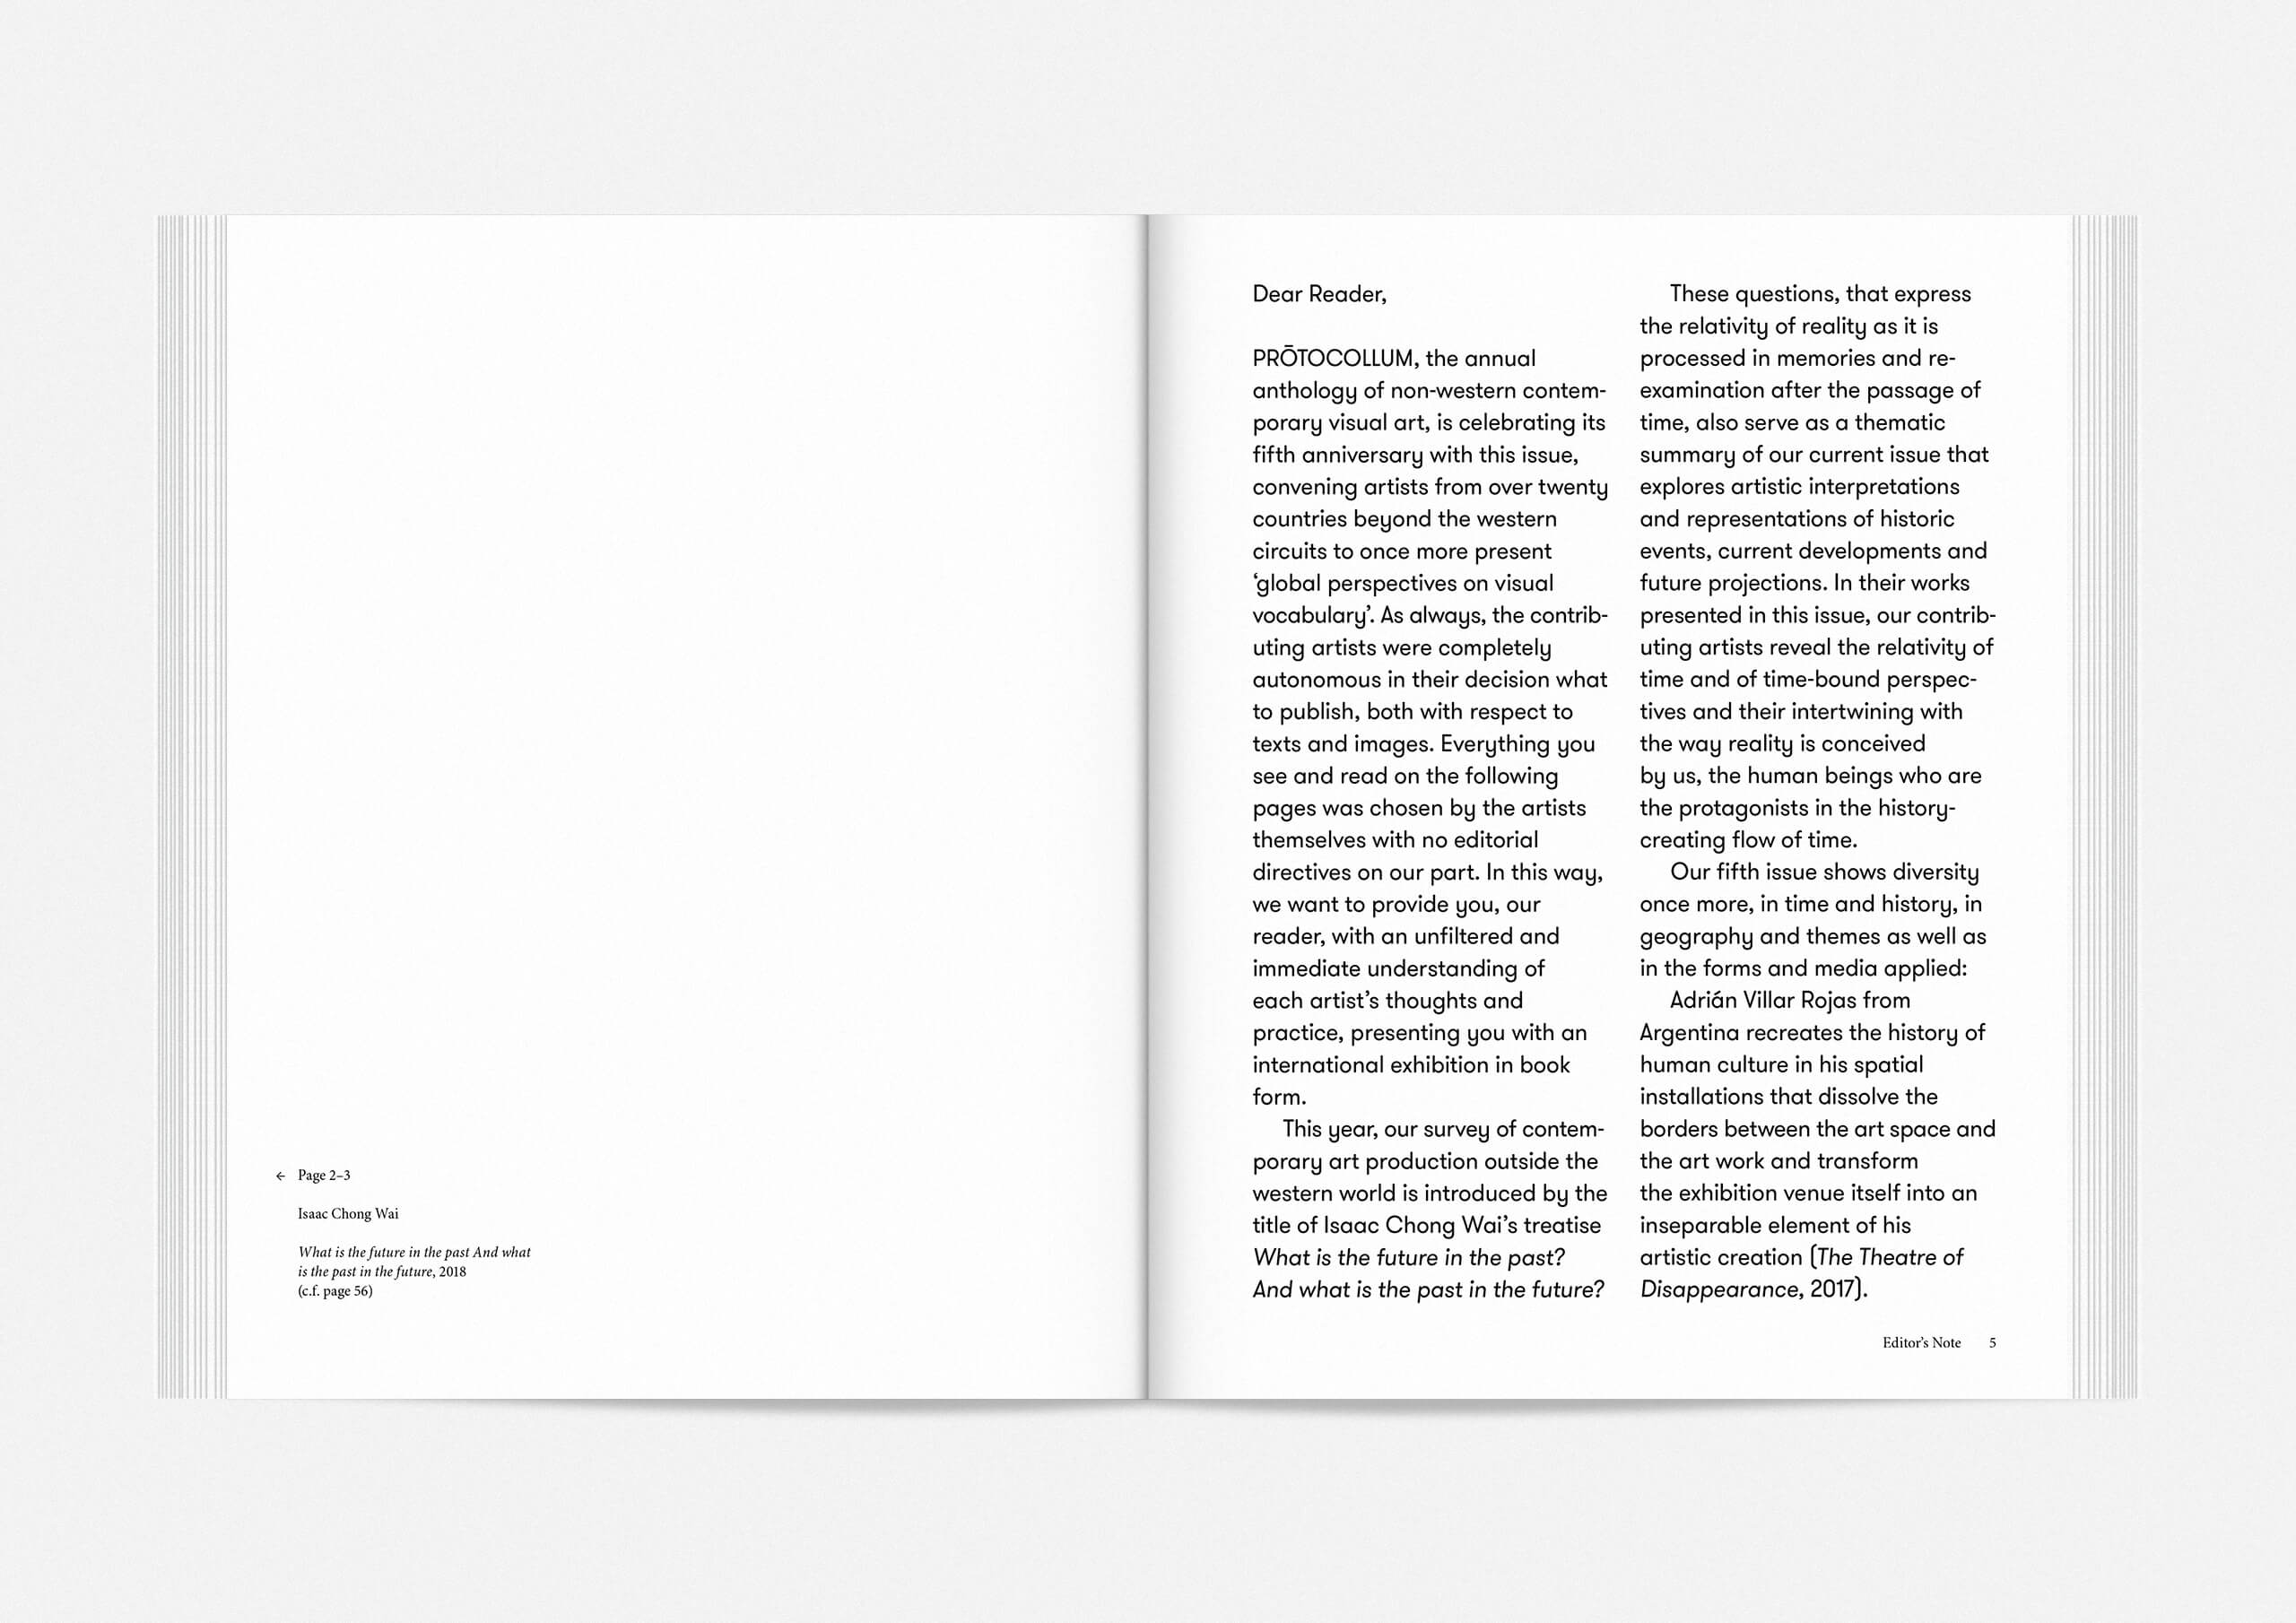 https://neuegestaltung.de/media/pages/clients/protocollum-issue-no-05/b8881a1cac-1597415145/protocollum-5-page-0405-ng.jpg